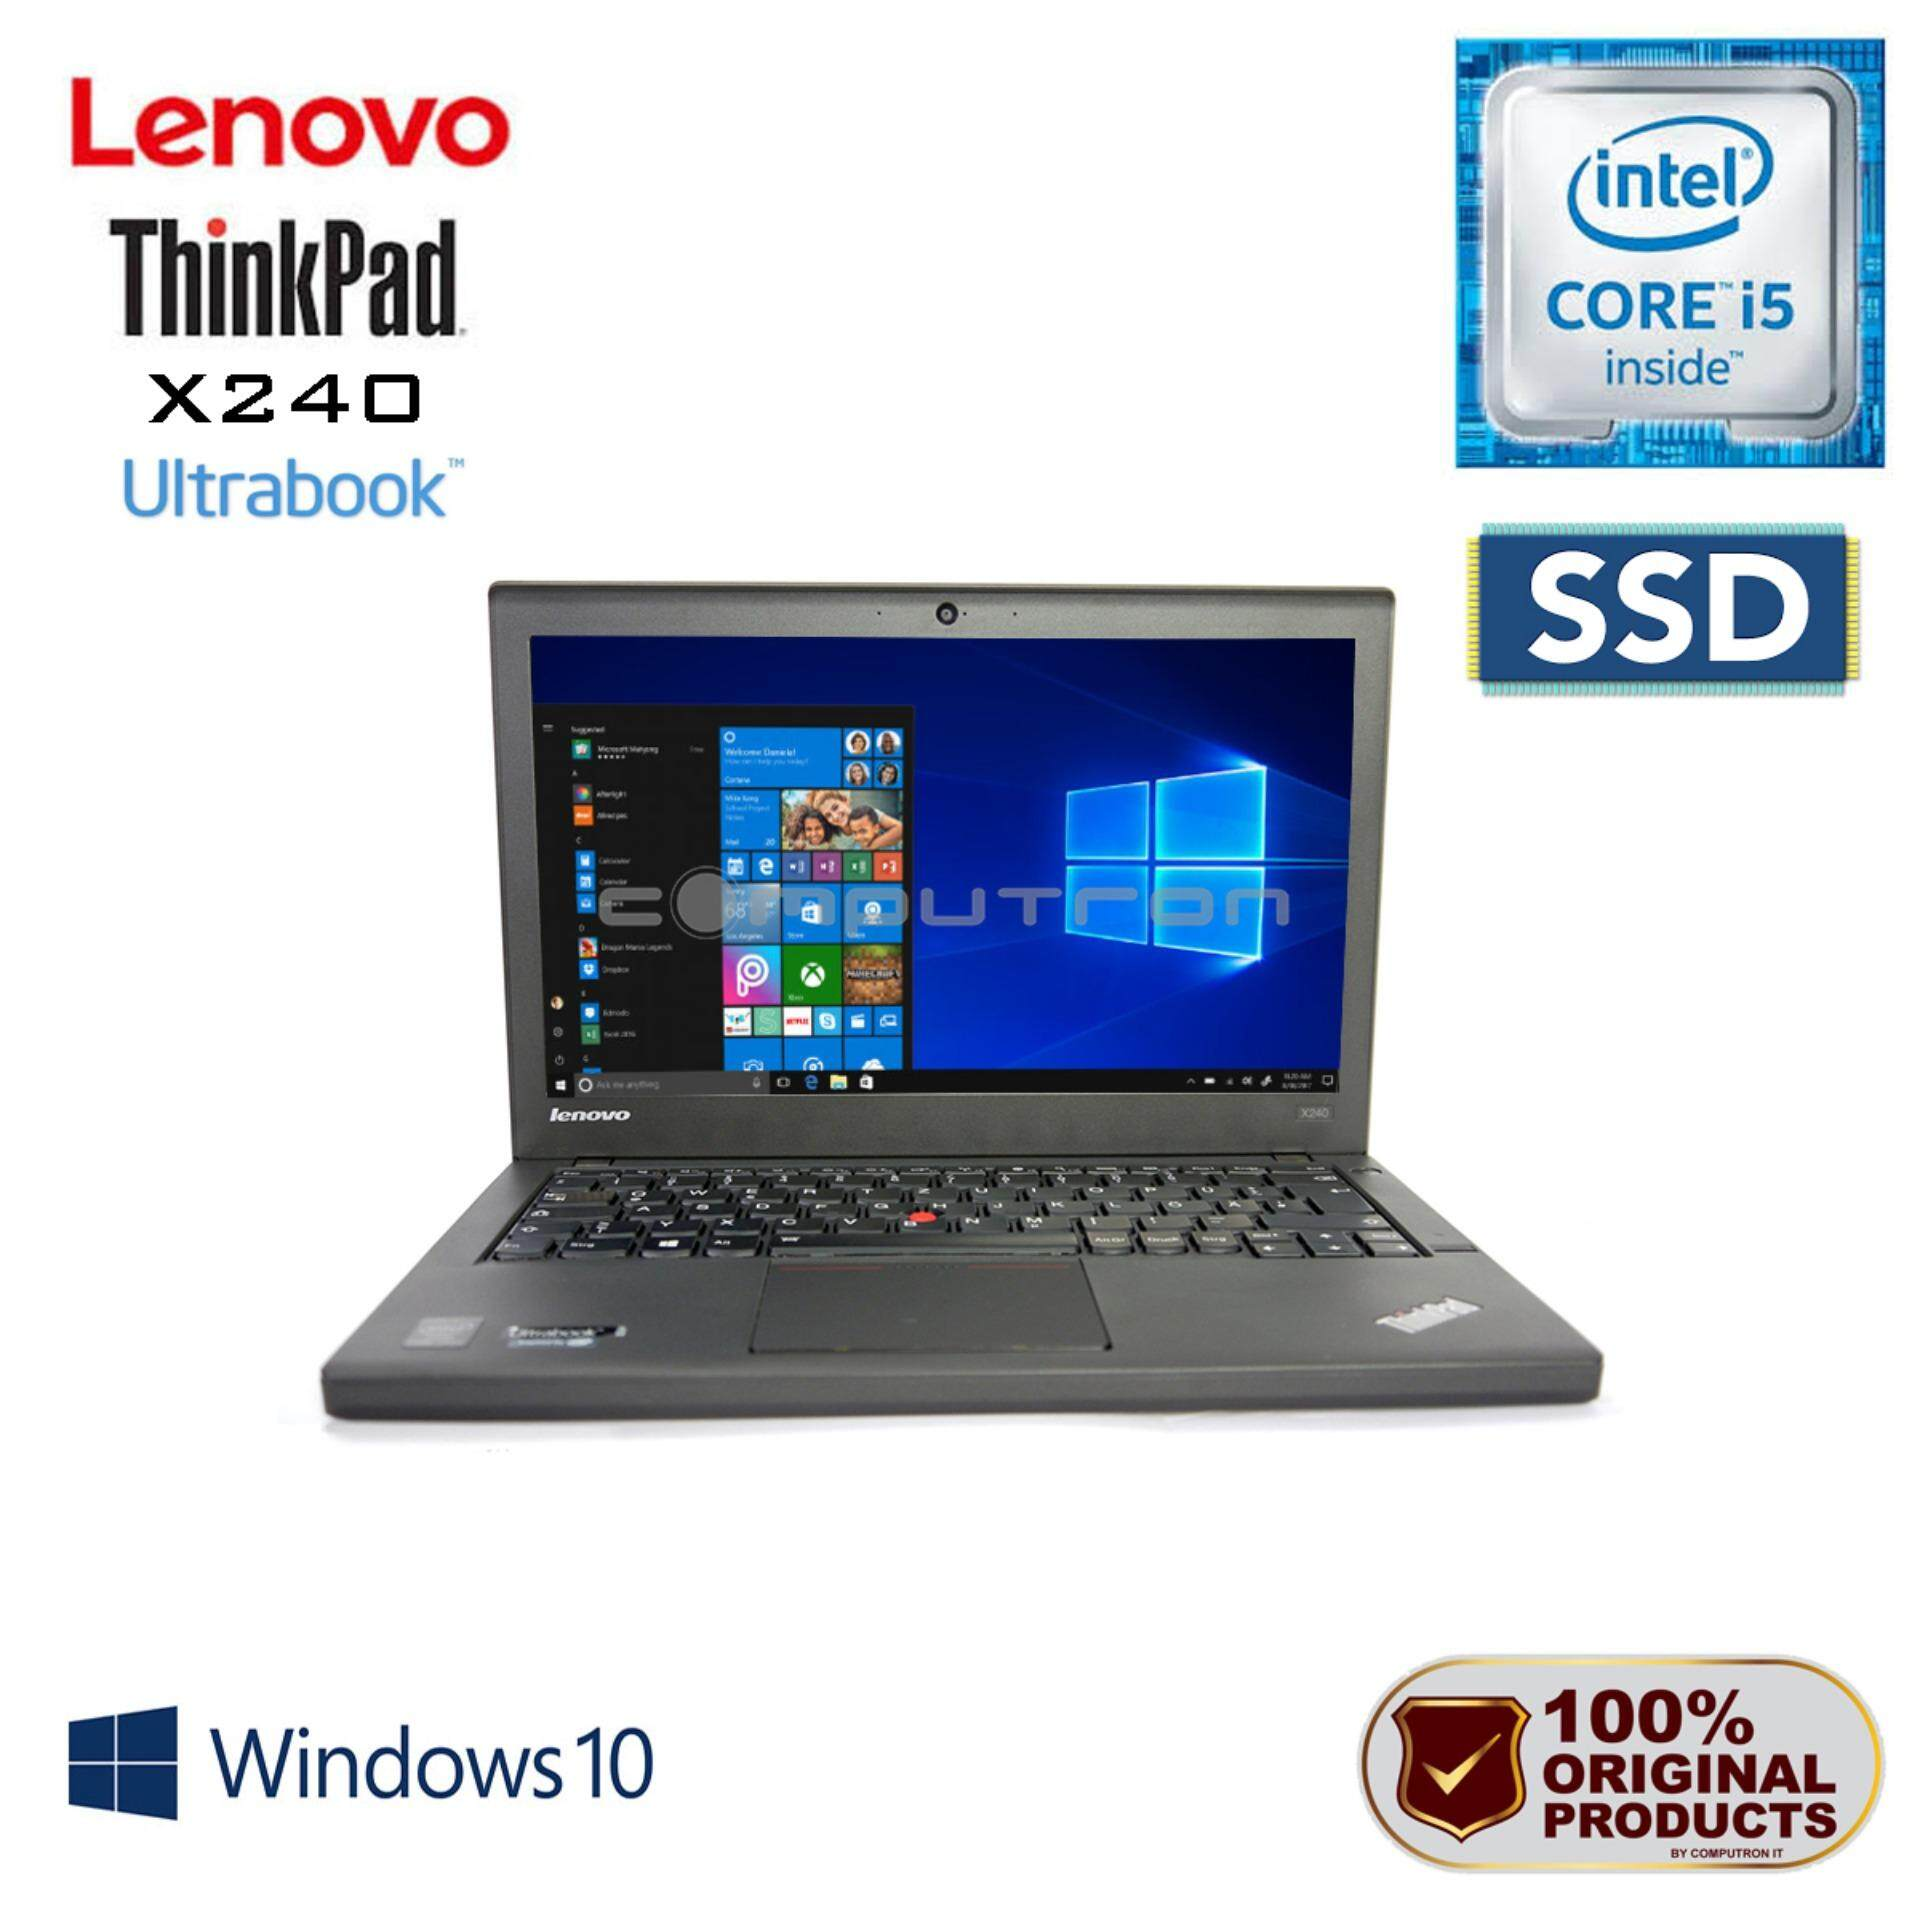 LENOVO THINKPAD X240 CORE I5 / 4GB RAM / 128GB SSD / W10PRO  [ 1 YEAR WARRANTY ] Malaysia